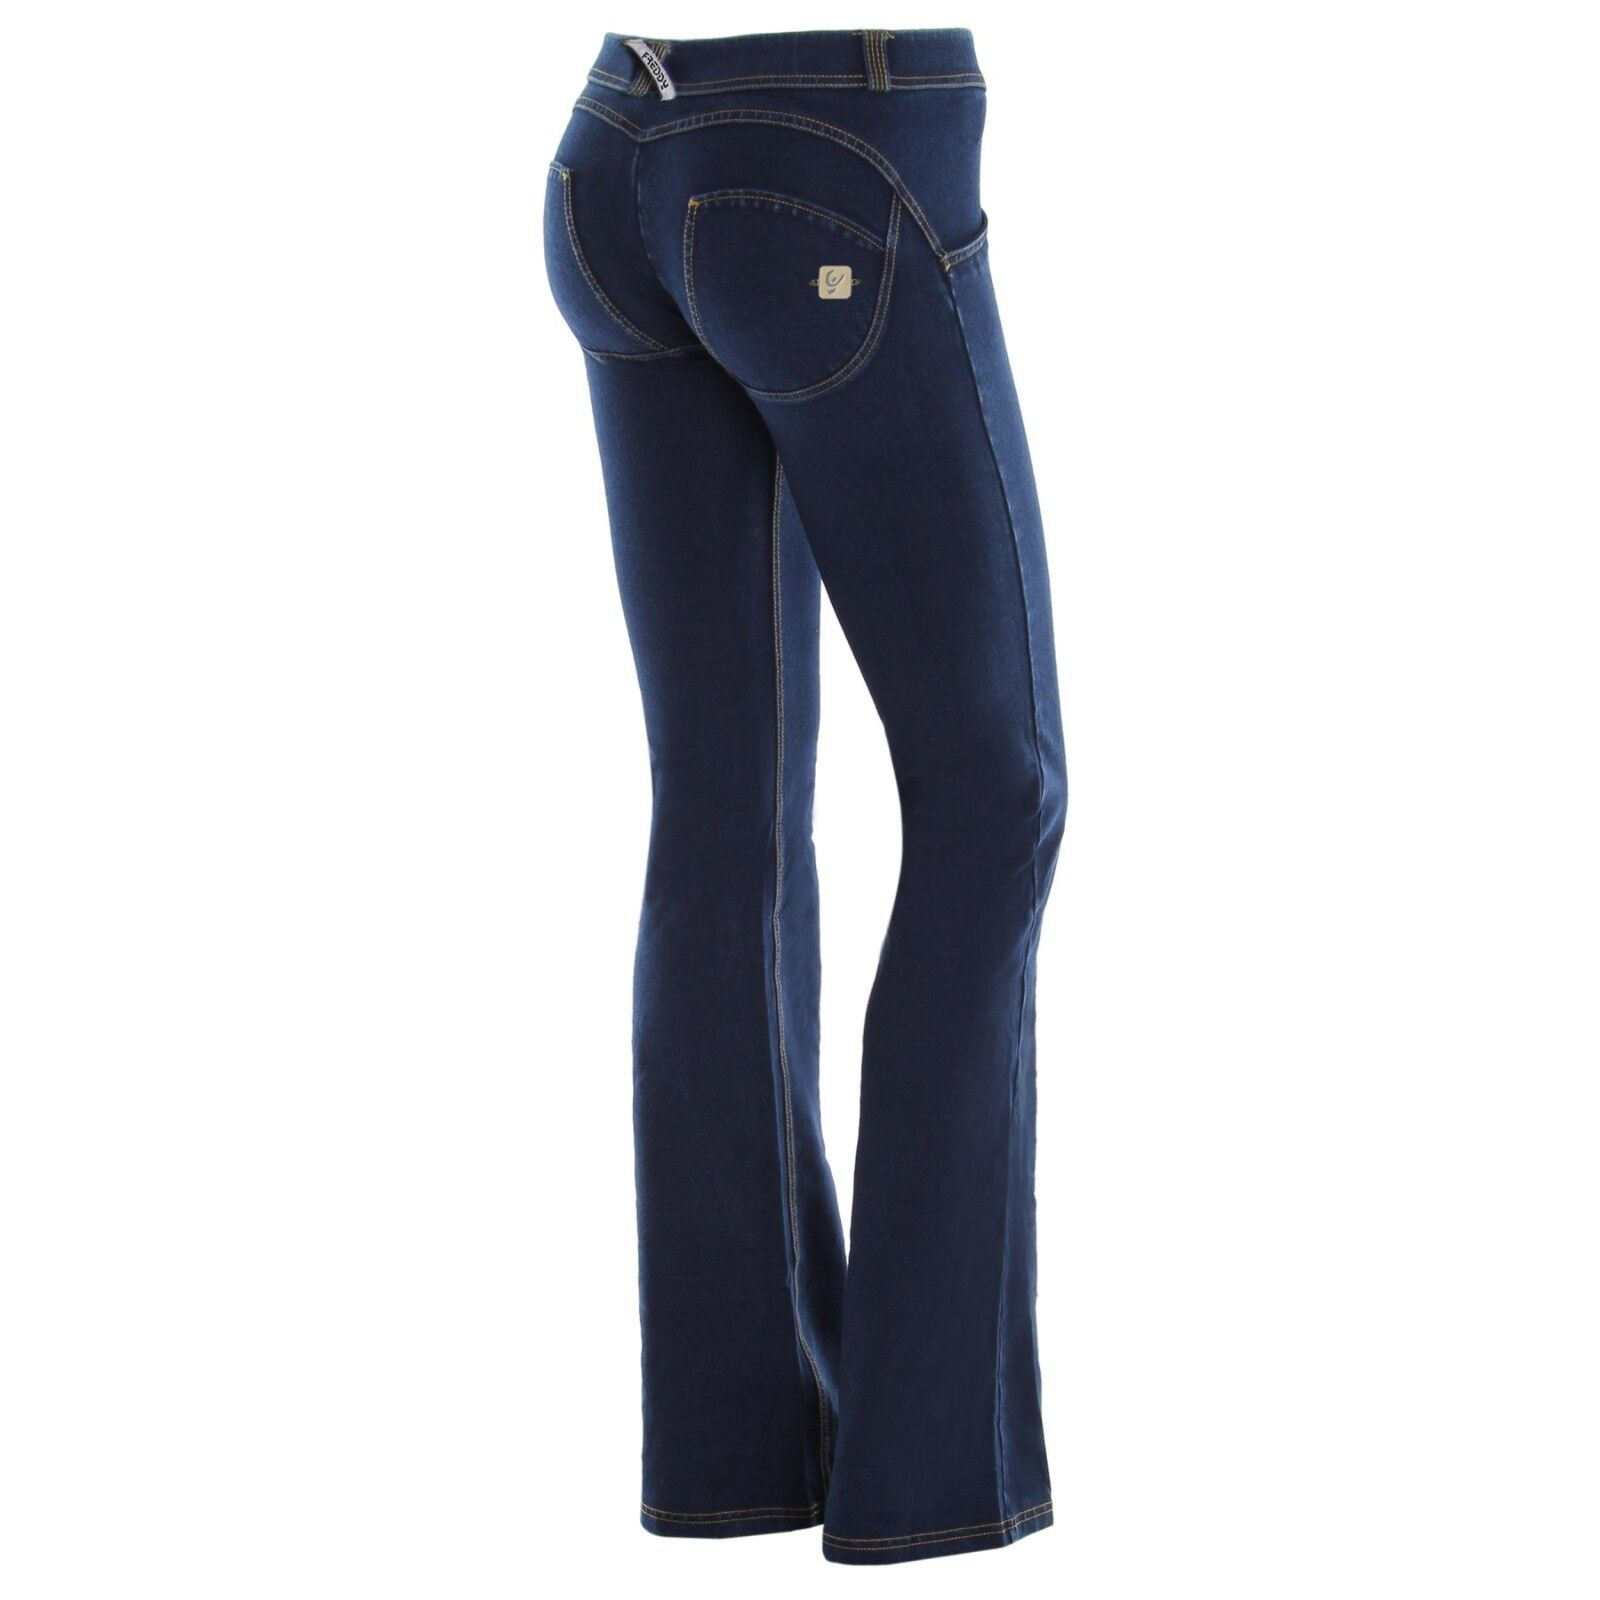 SCONTO 10% FREDDY WR.UP L XL JEANS ZAMPA PUSH UP WRUP11RJ01E FLARE VITA REGULAR